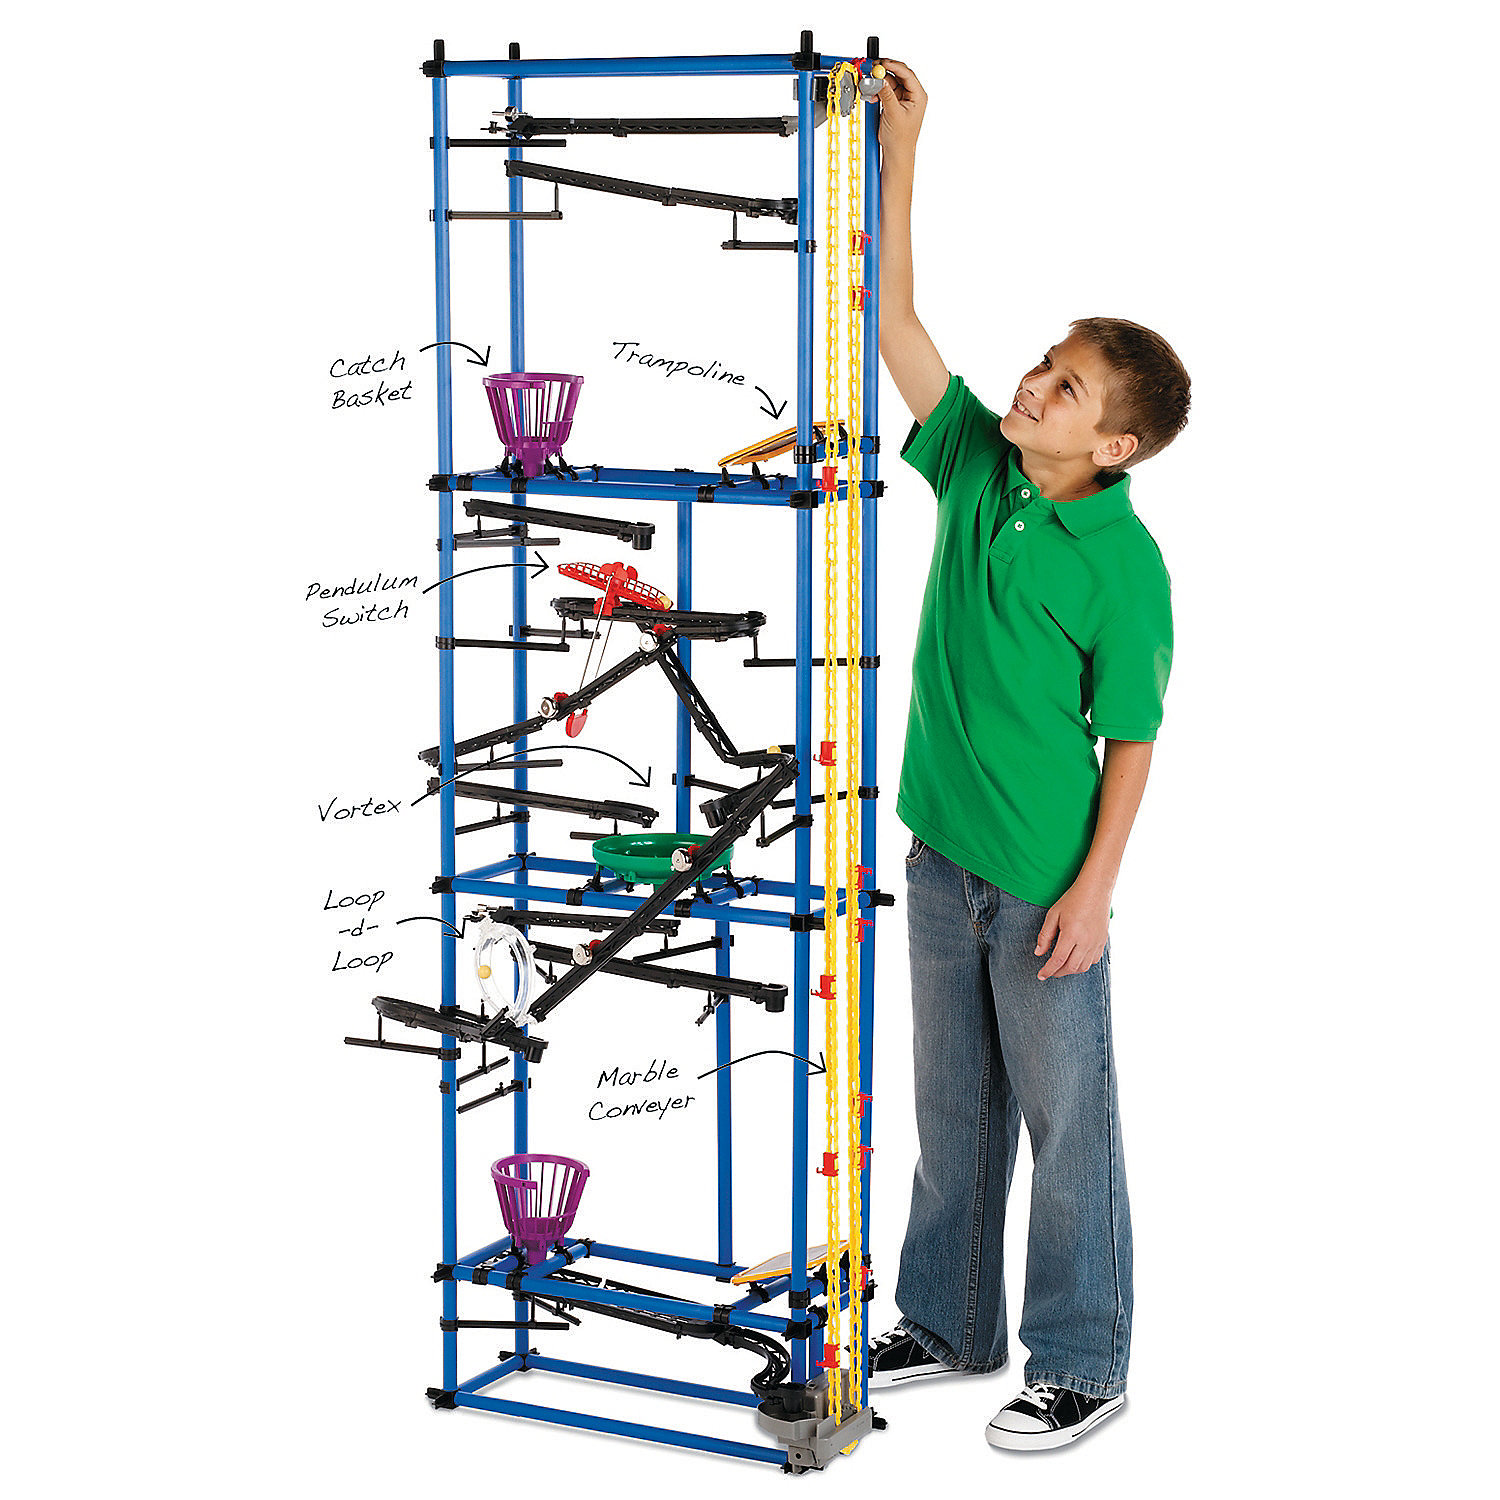 Chaos Tower, Building Sets, Creative Construction - Mindware